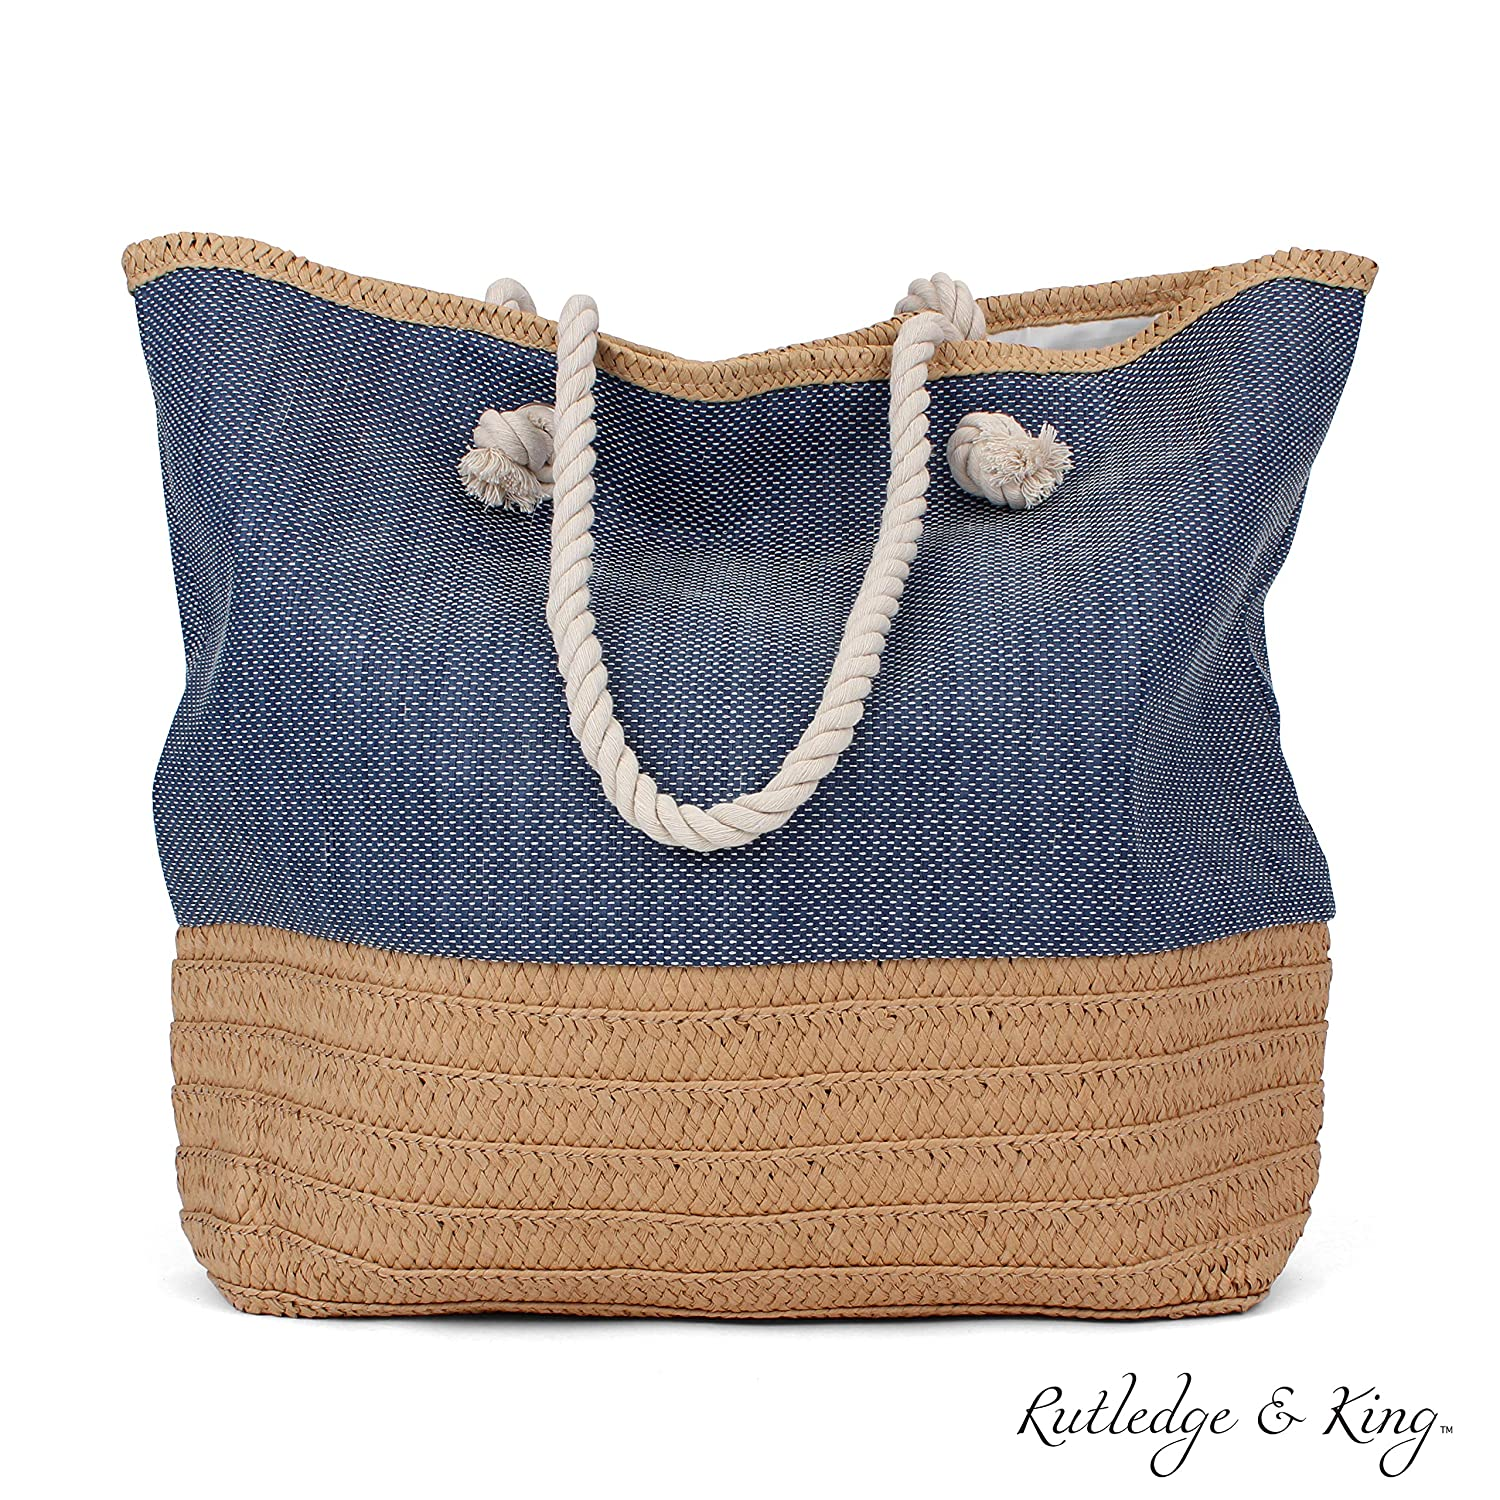 250cb2843 Amazon.com: Tote Bag - Beach Bag - Beach Tote - Large Tote Bag with Rope  Handles - Rutledge & King™ Waverly Designer Tote Bag - Straw Tote: Shoes